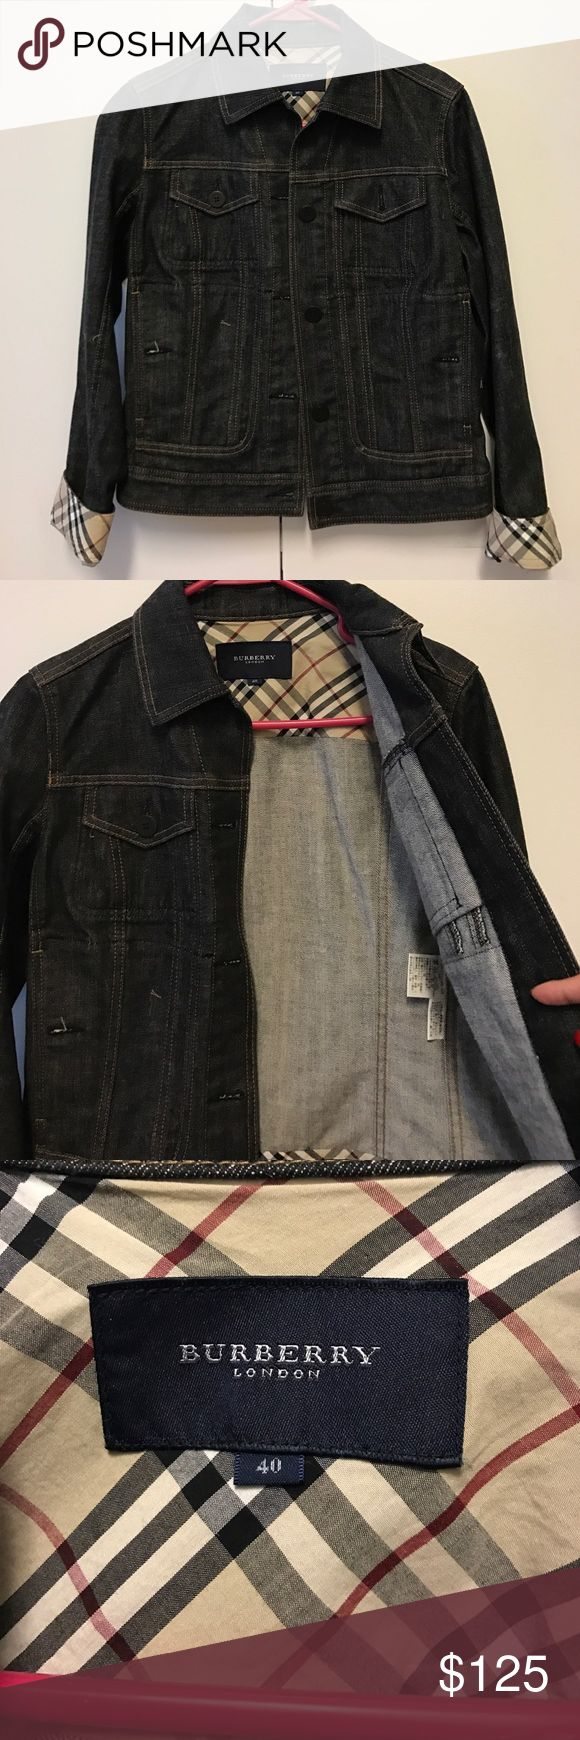 Burberry Denim Jacket Size EU40 or US8 Purchased this from a consignment shop in Japan for a friend but it's didn't fit. Nice dark denim with signature Burberry on trim under collar (so if you pop the collar it will show) and wrists. No flaws. I converted eu40 to Us size and it says it should fit a US8. Please do your own research on sizing before purchasing. Thanks ❤ Burberry Jackets & Coats Jean Jackets